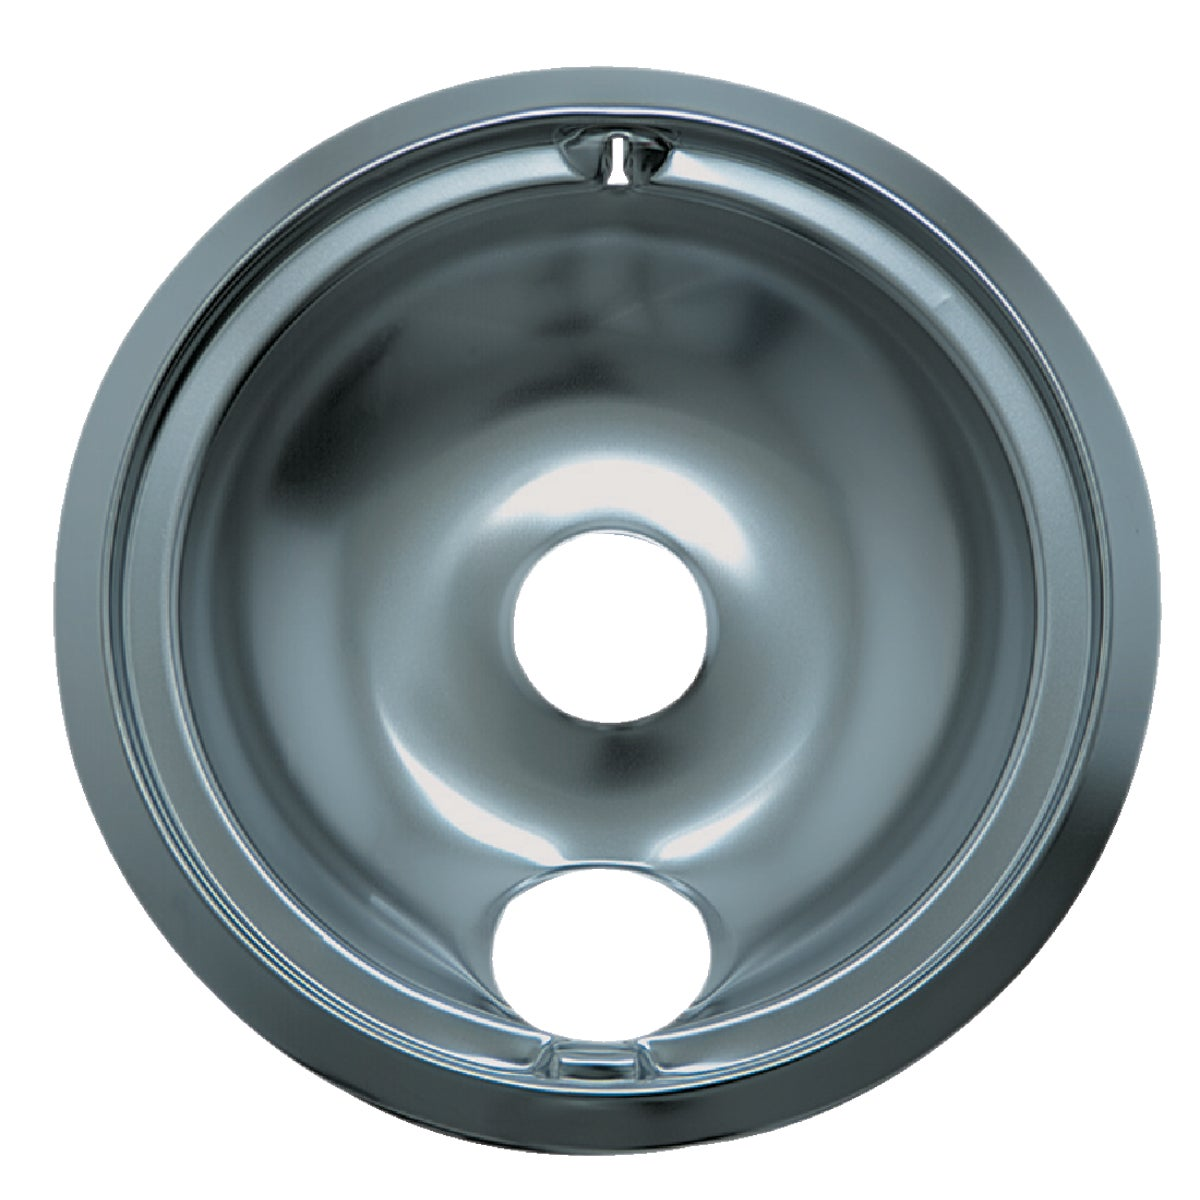 "8"" CHROME DRIP PAN - 120A by Range Kleen Mfg Inc"